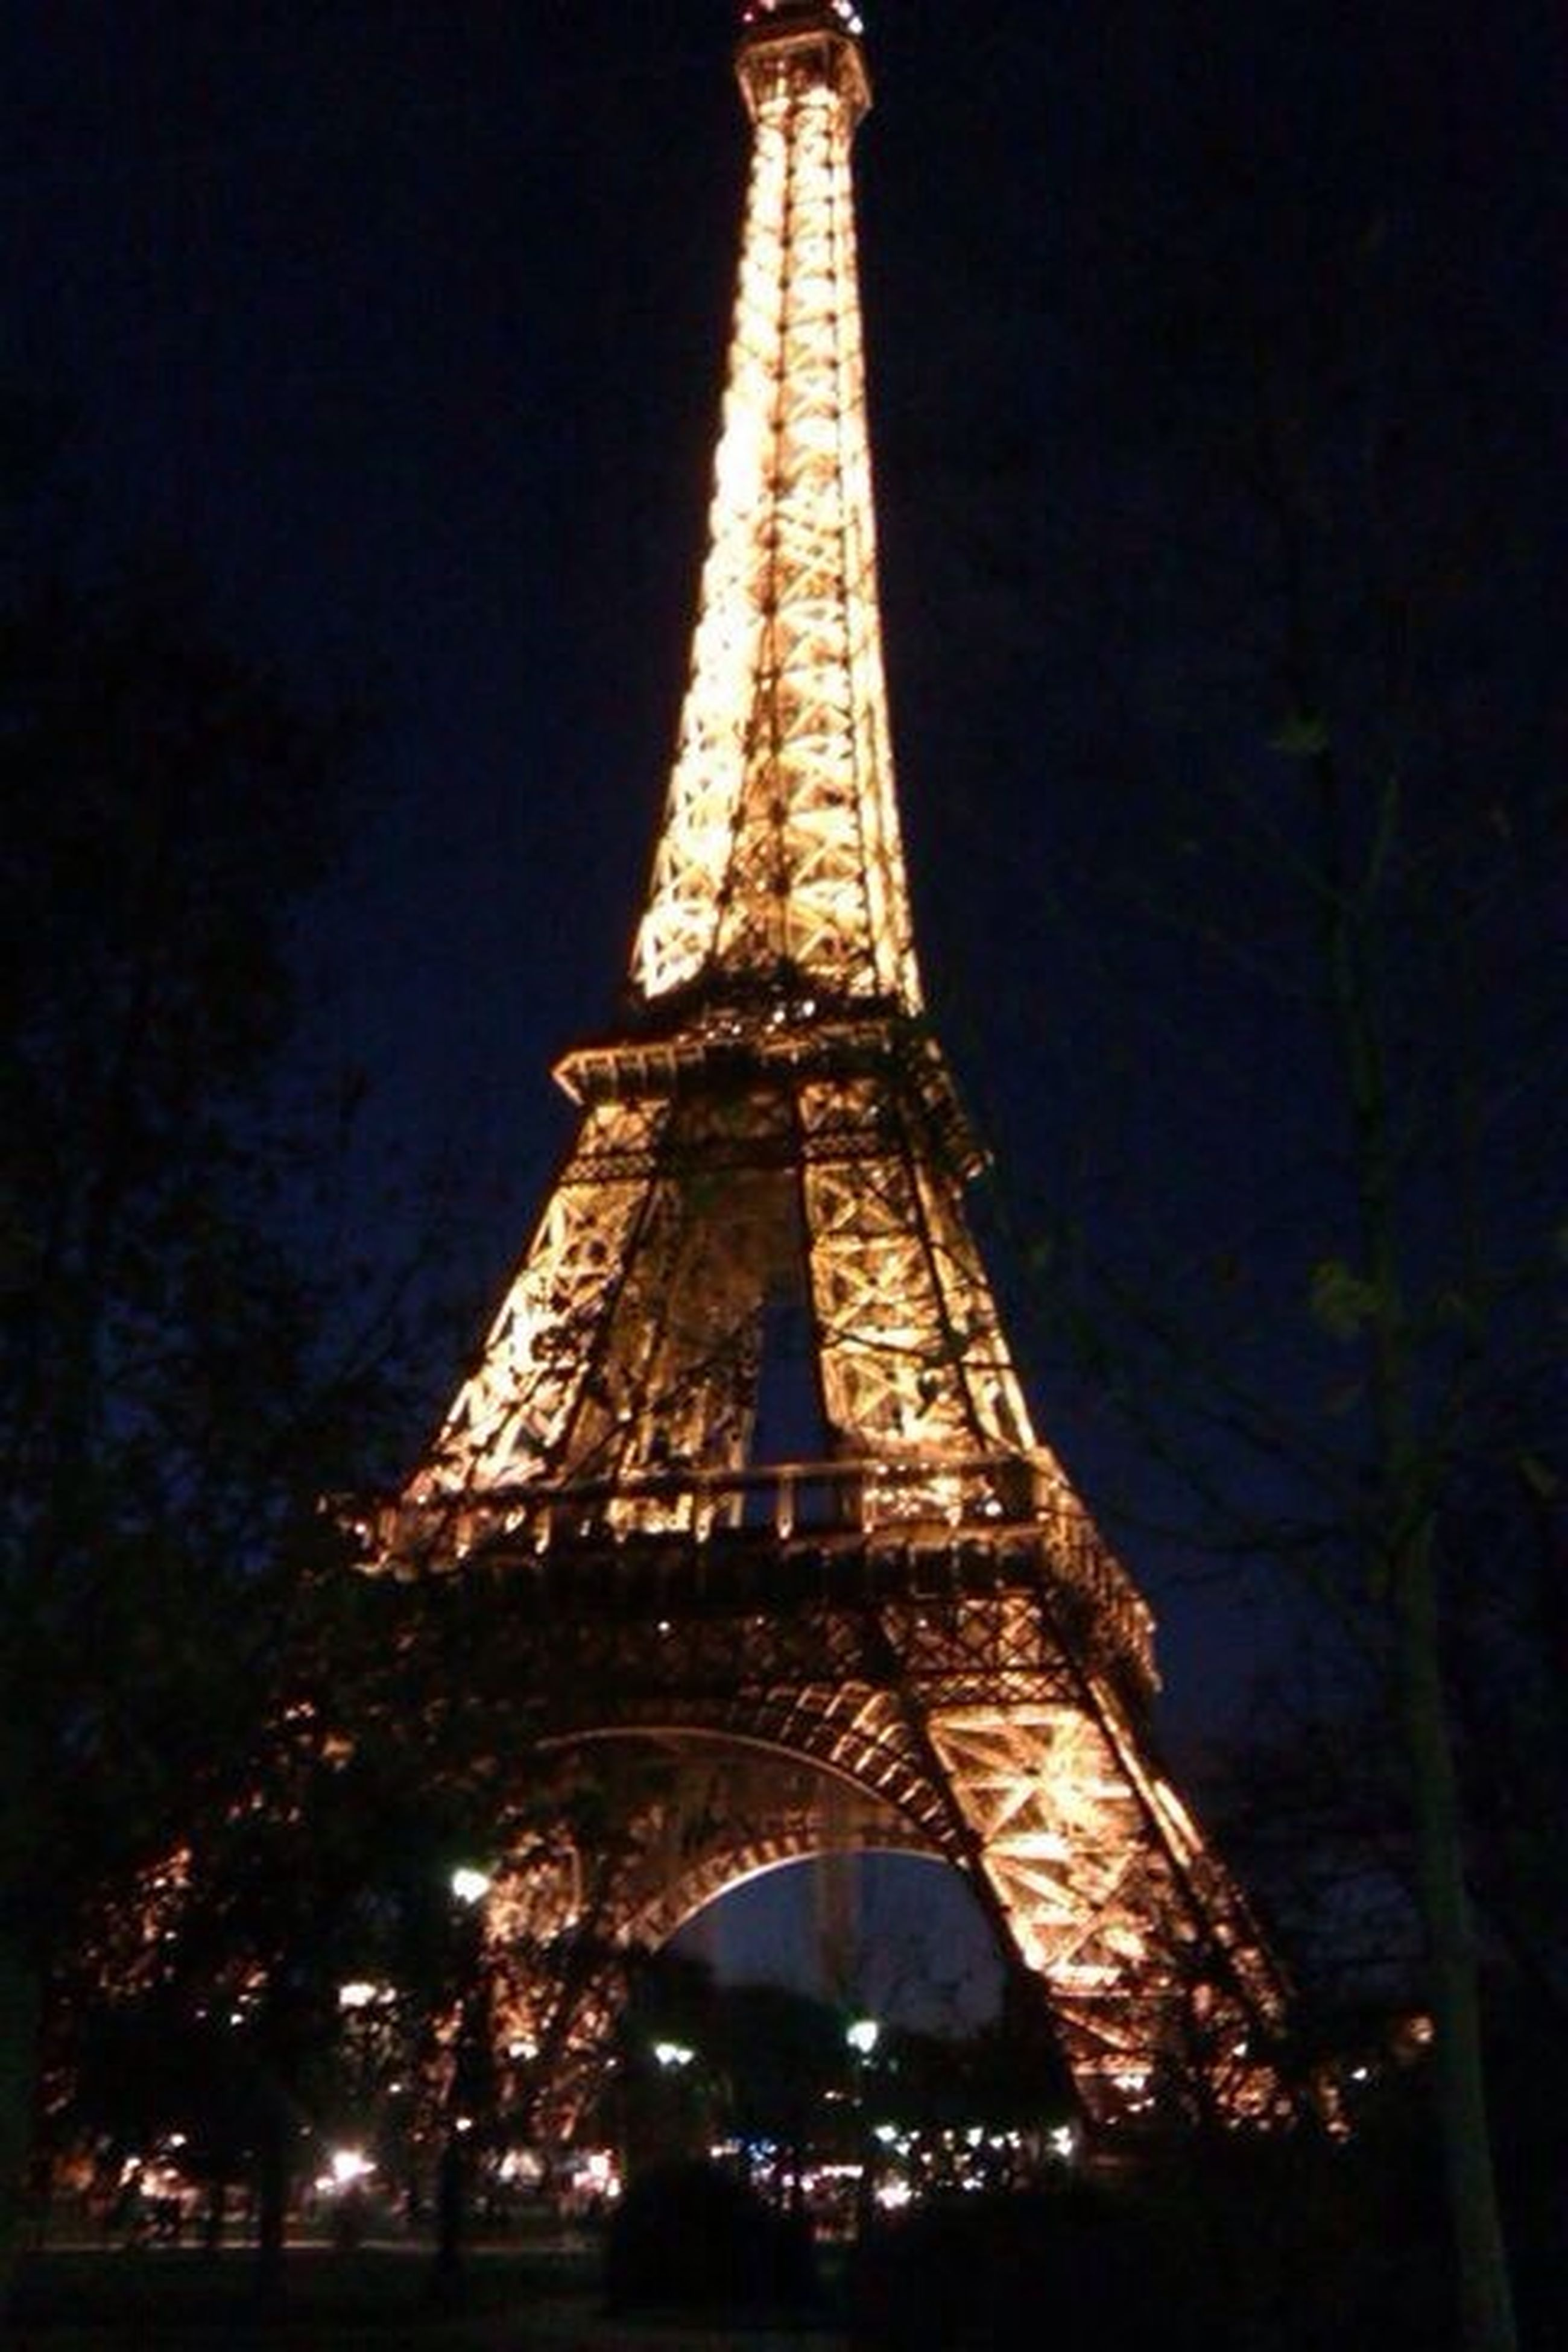 architecture, built structure, eiffel tower, night, international landmark, famous place, travel destinations, illuminated, tower, capital cities, tall - high, tourism, travel, city, building exterior, low angle view, sky, culture, metal, engineering